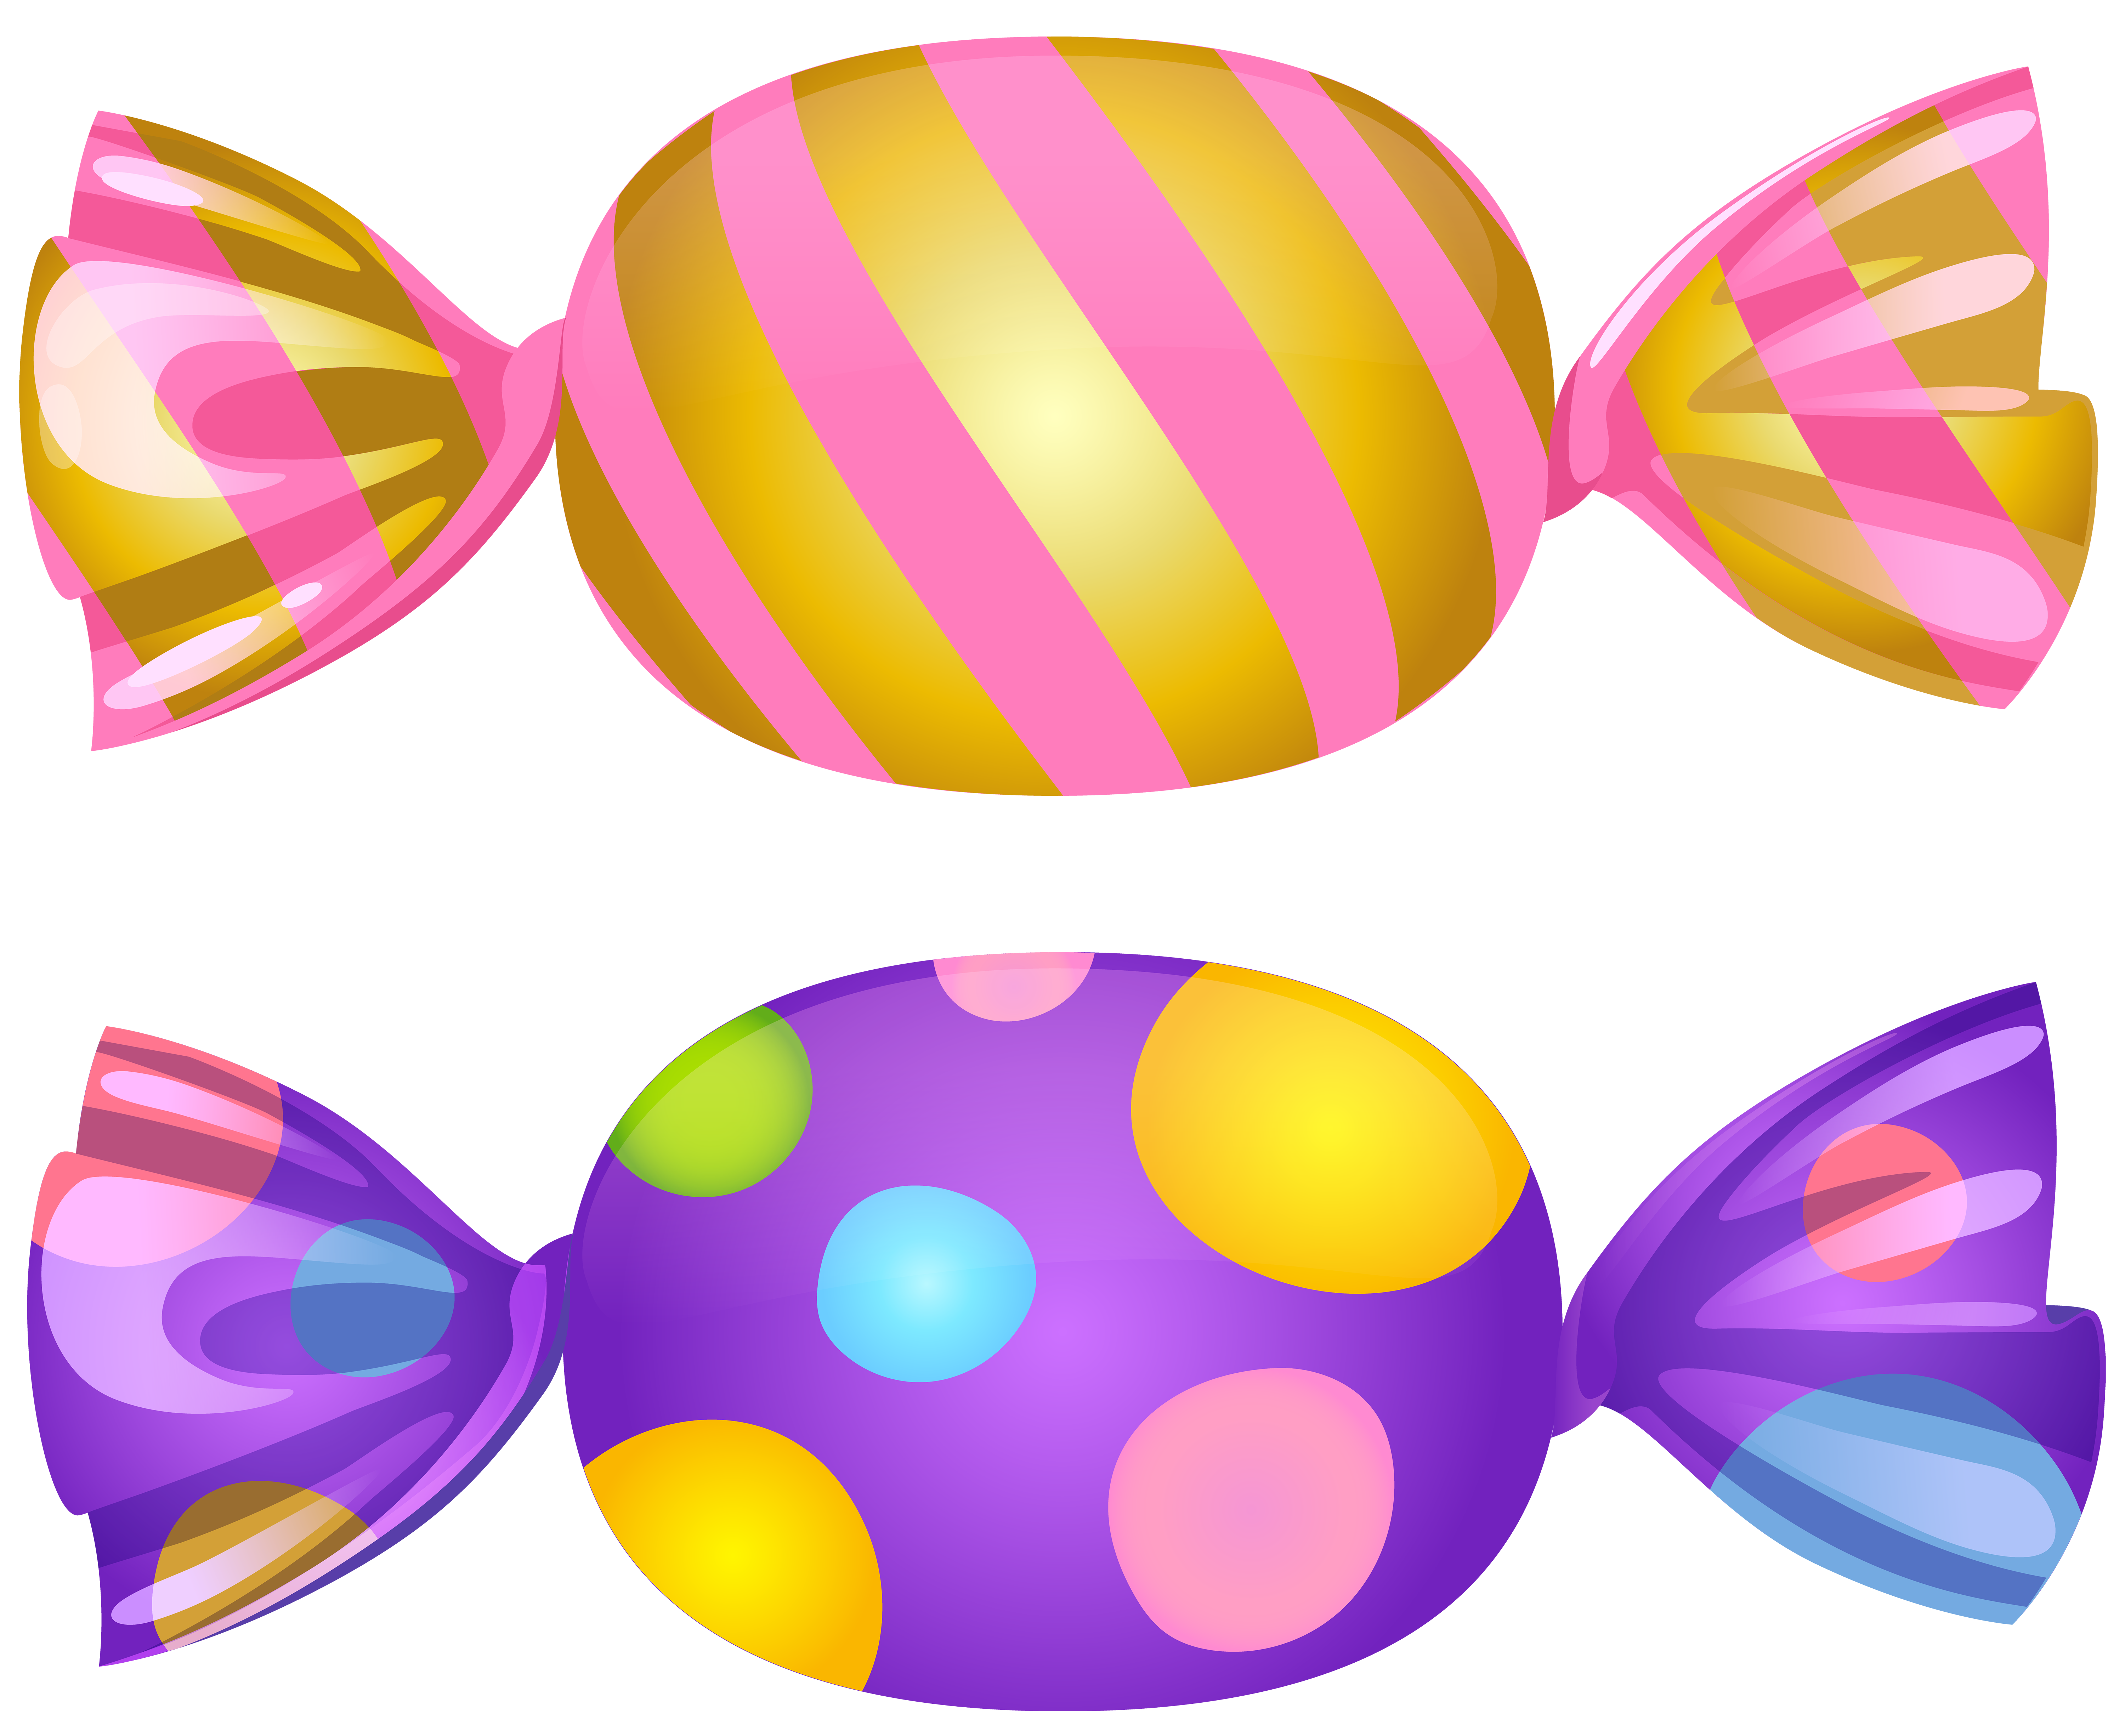 6000x4902 Candy Transparent Png Clip Artu200b Gallery Yopriceville